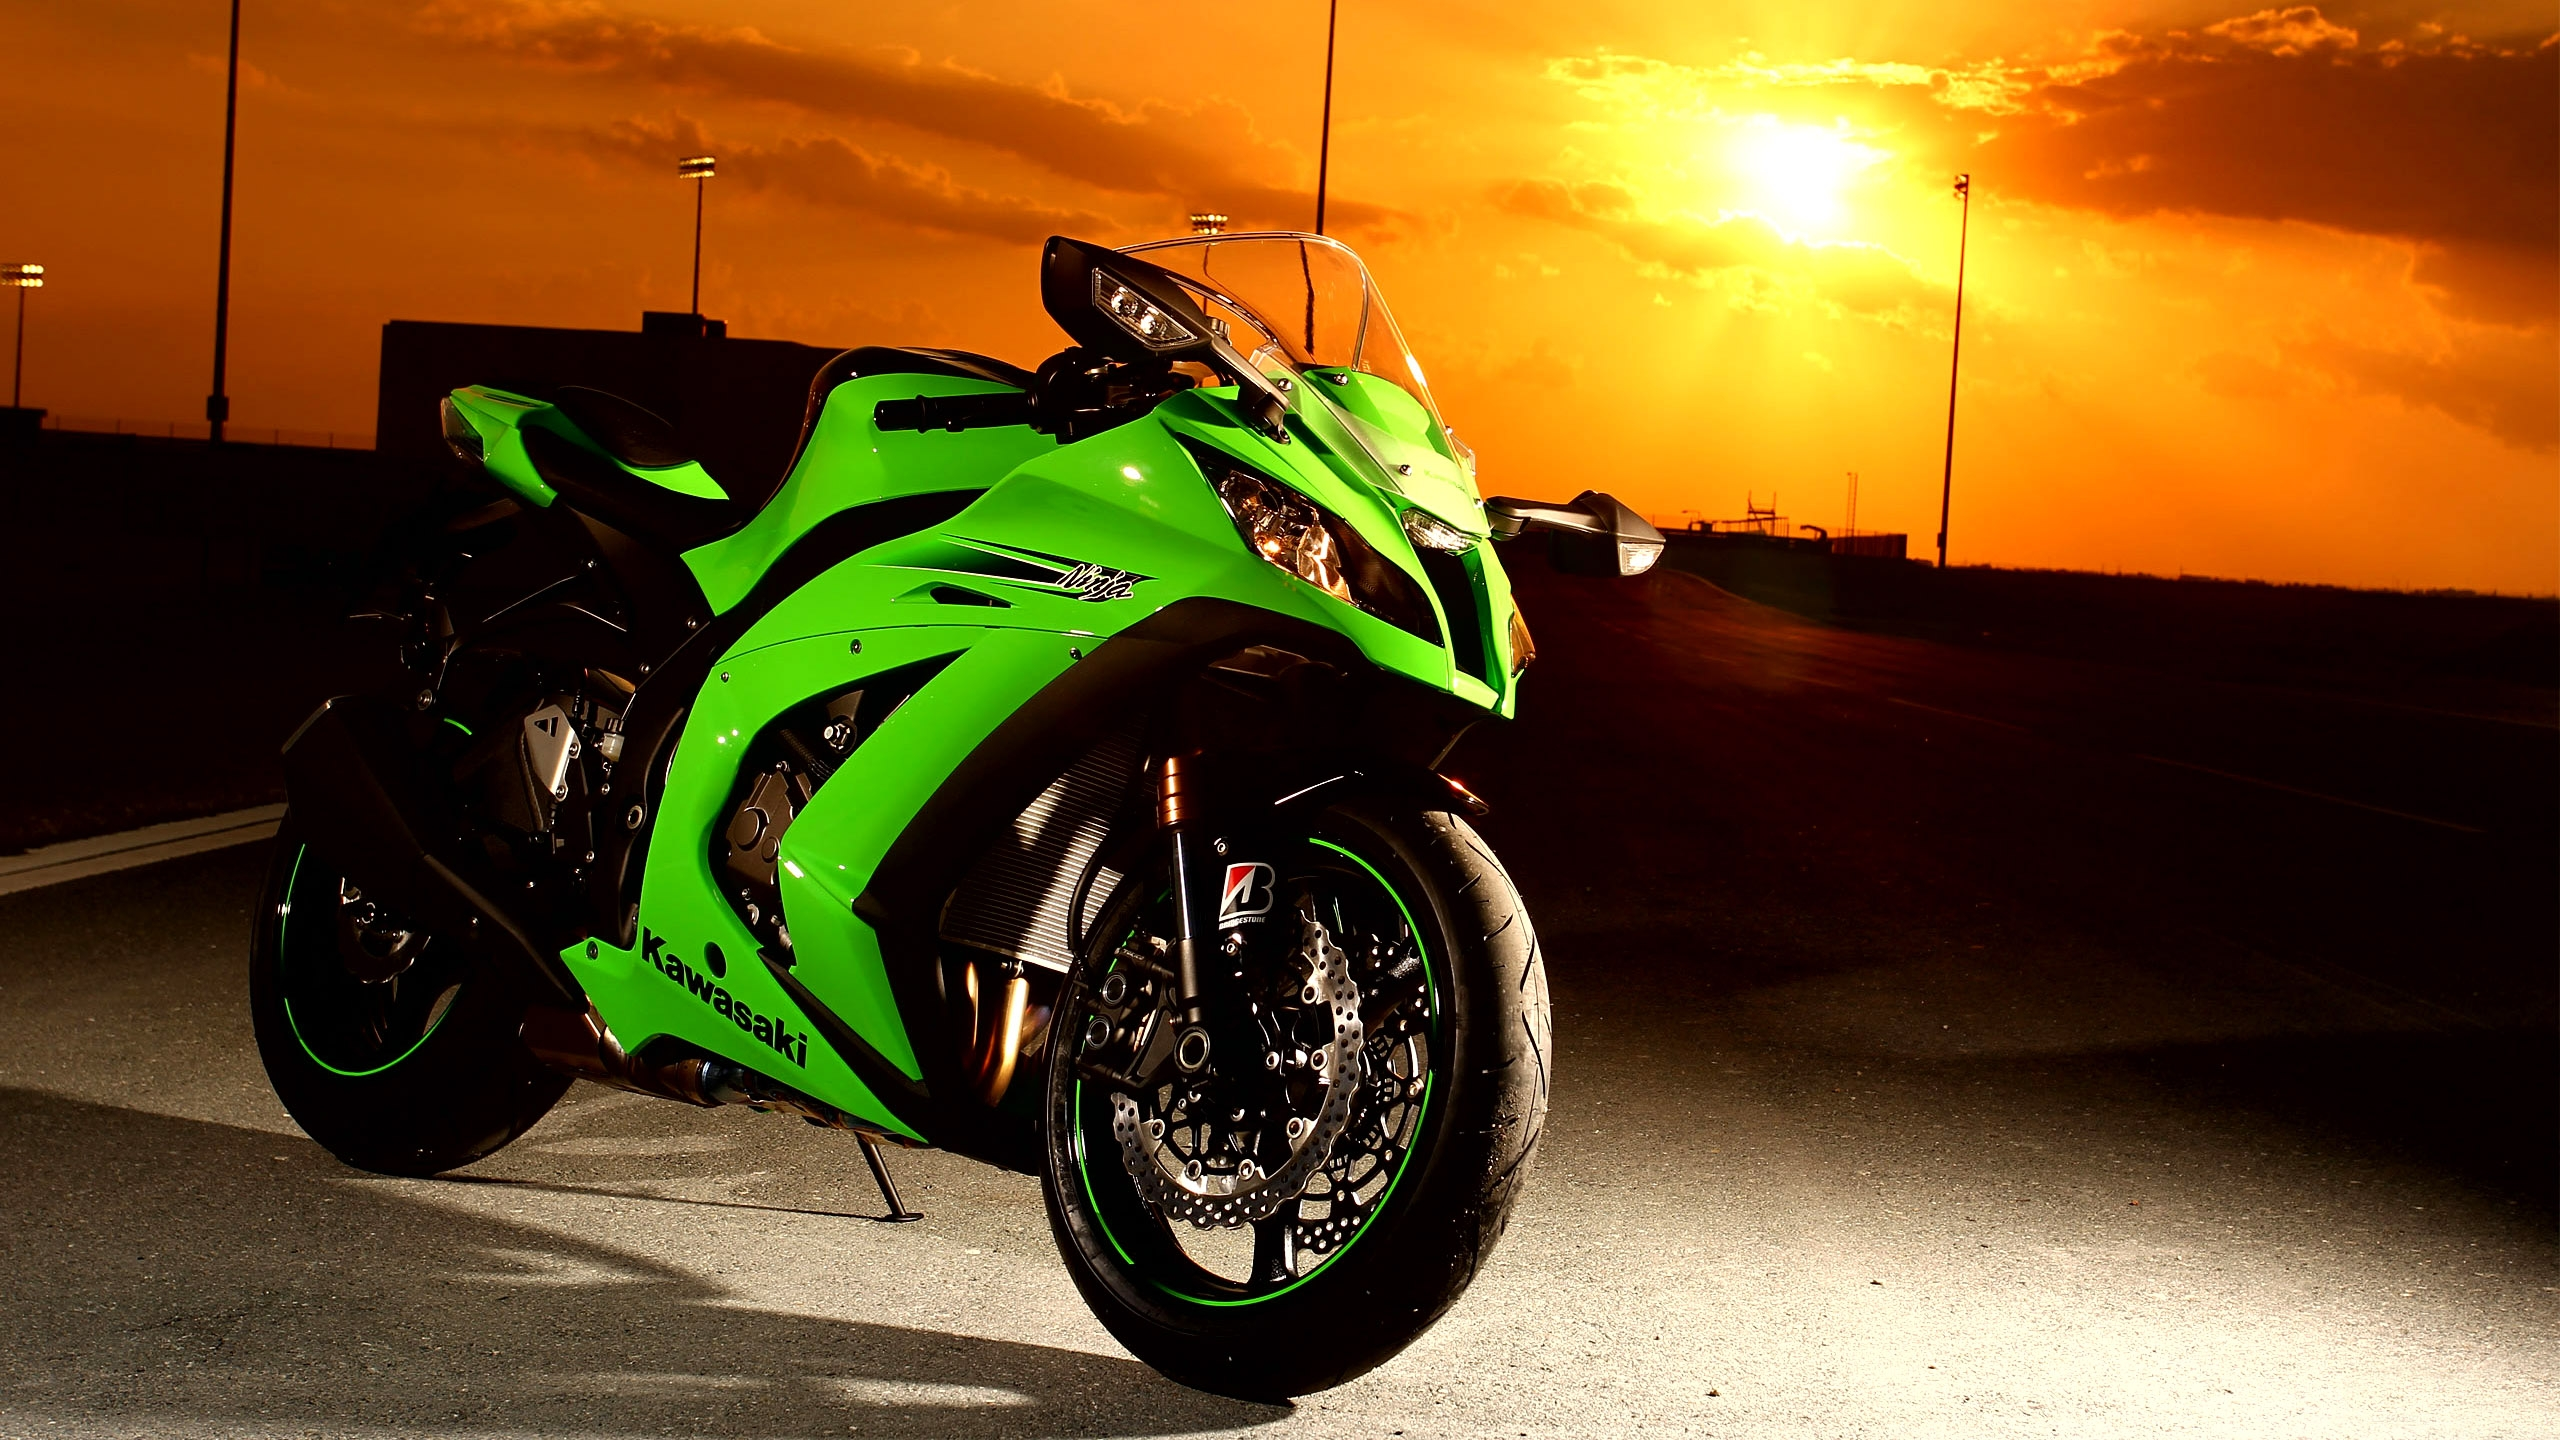 Amazing Kawasaki Wallpaper